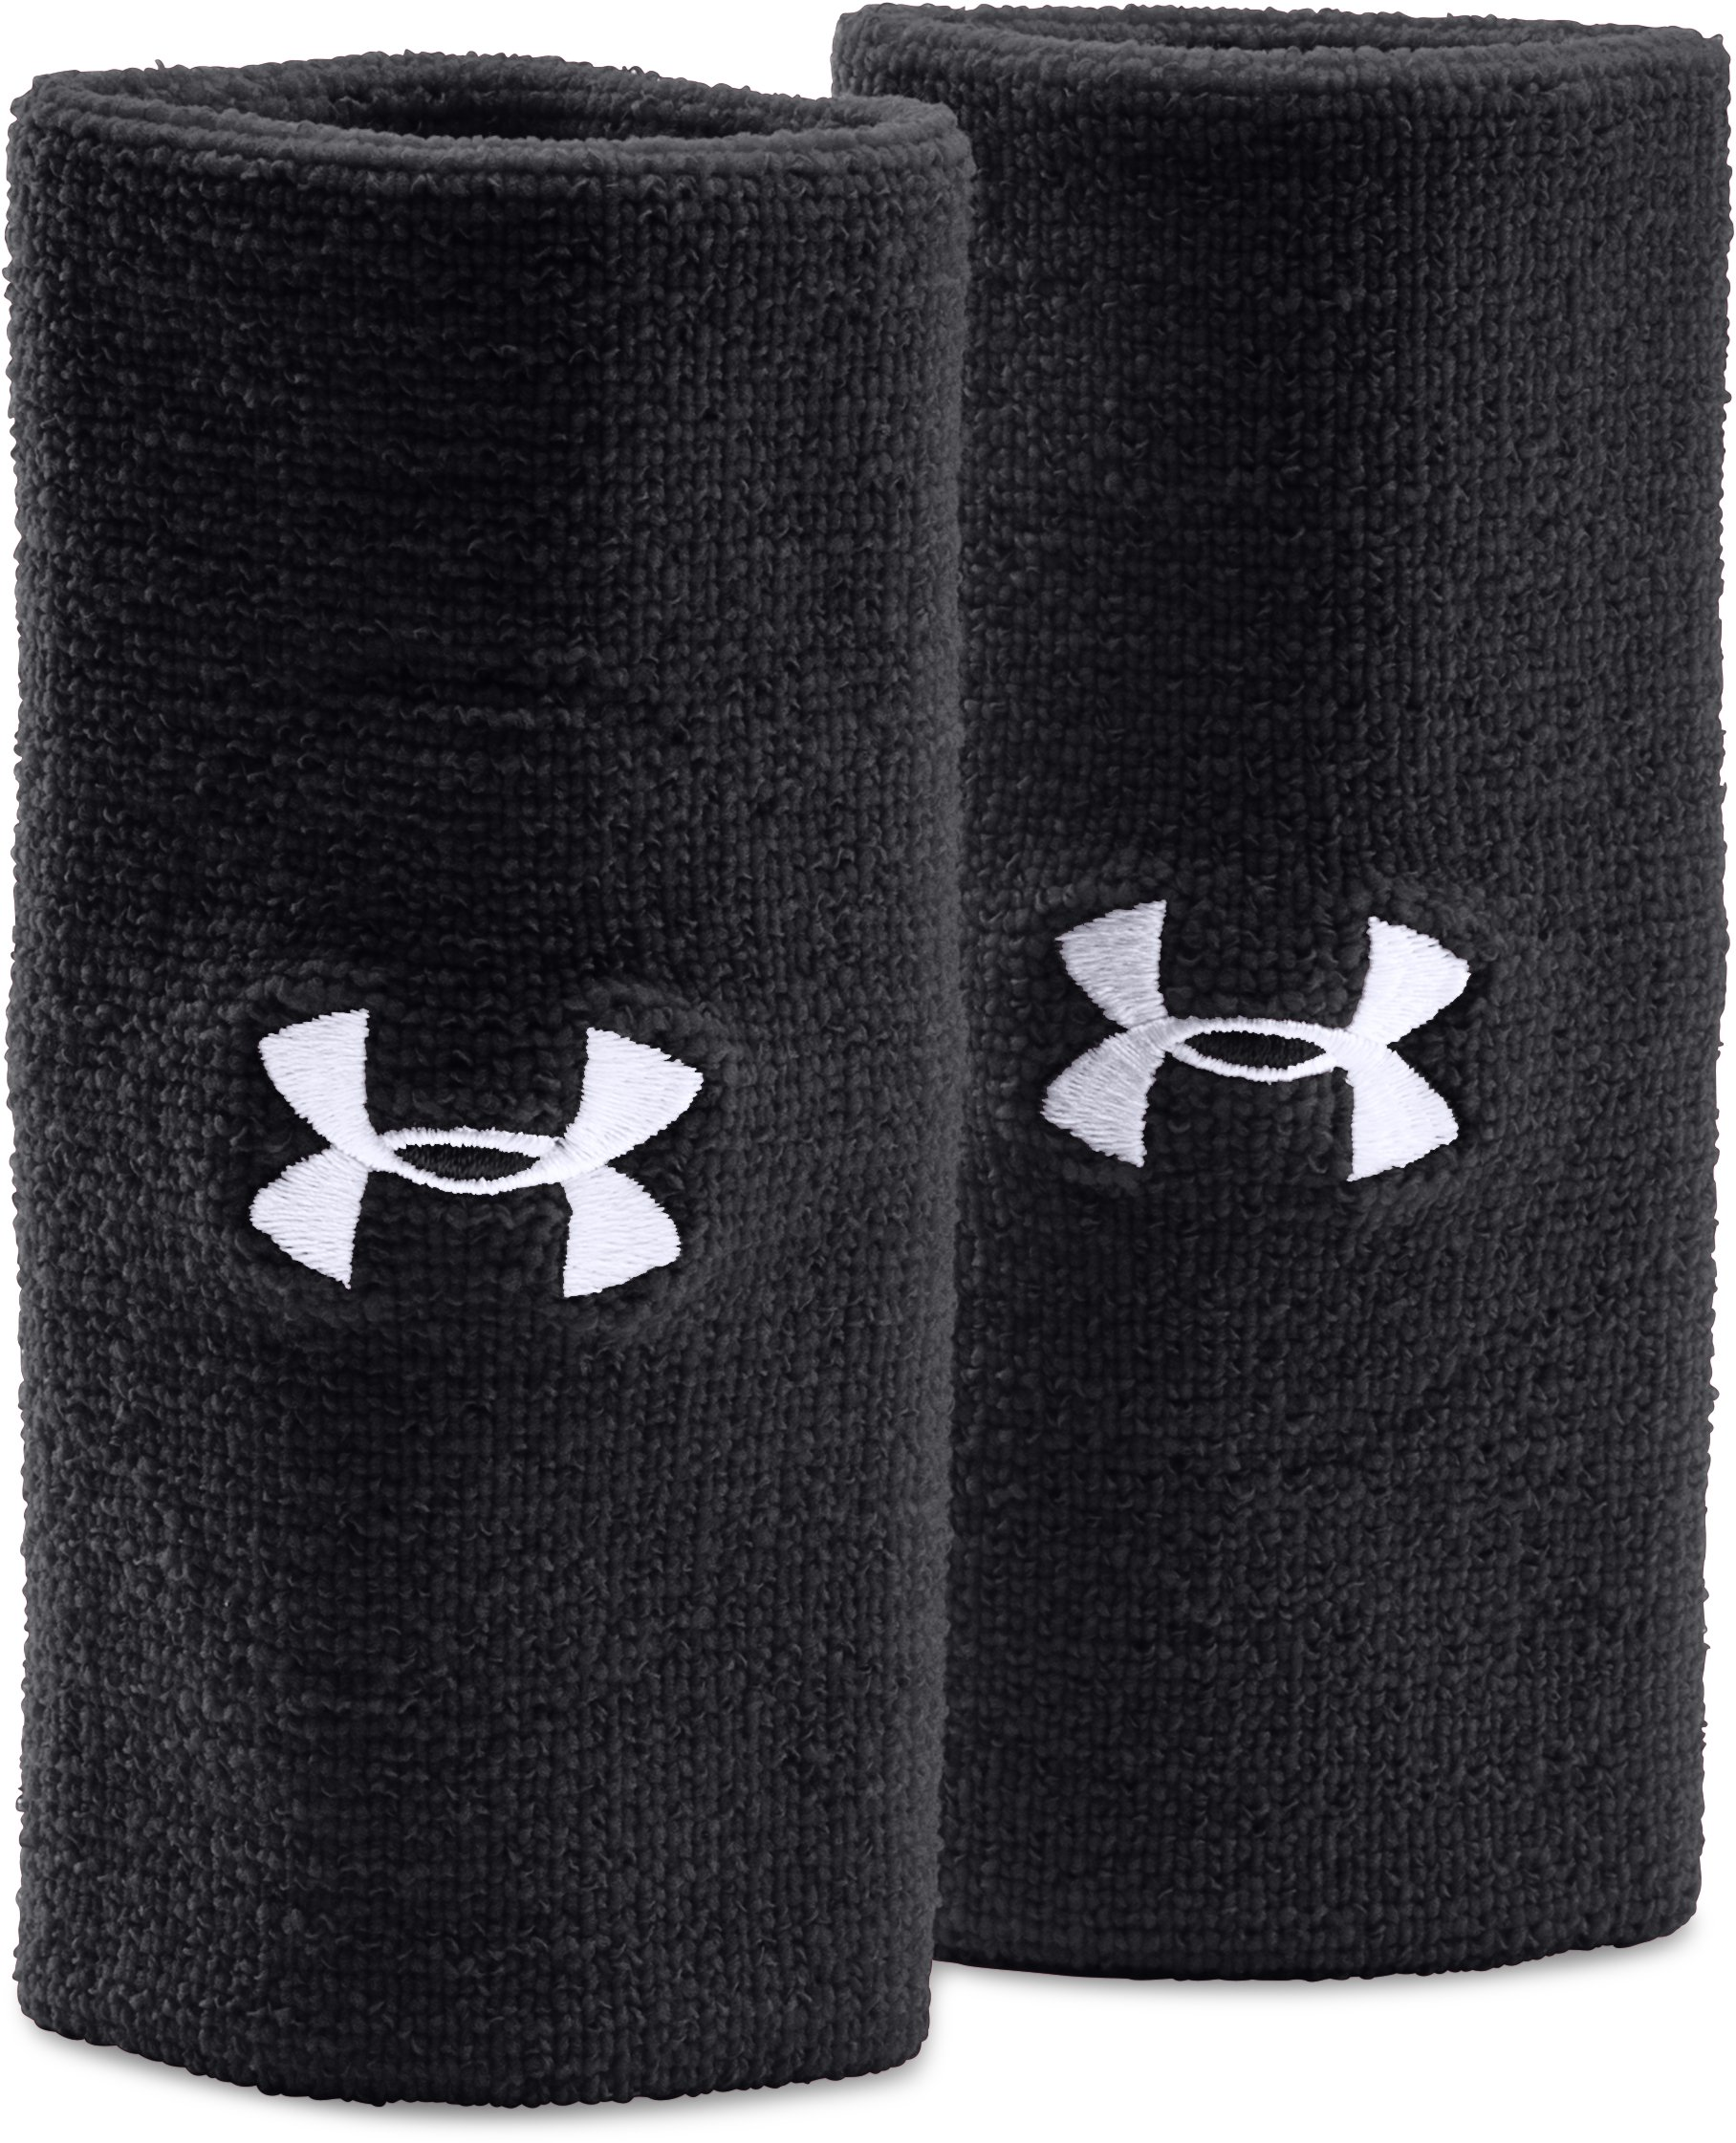 "protection equipments 6"" UA Performance Wristband 2-Pack Great for <strong>protection</strong>."